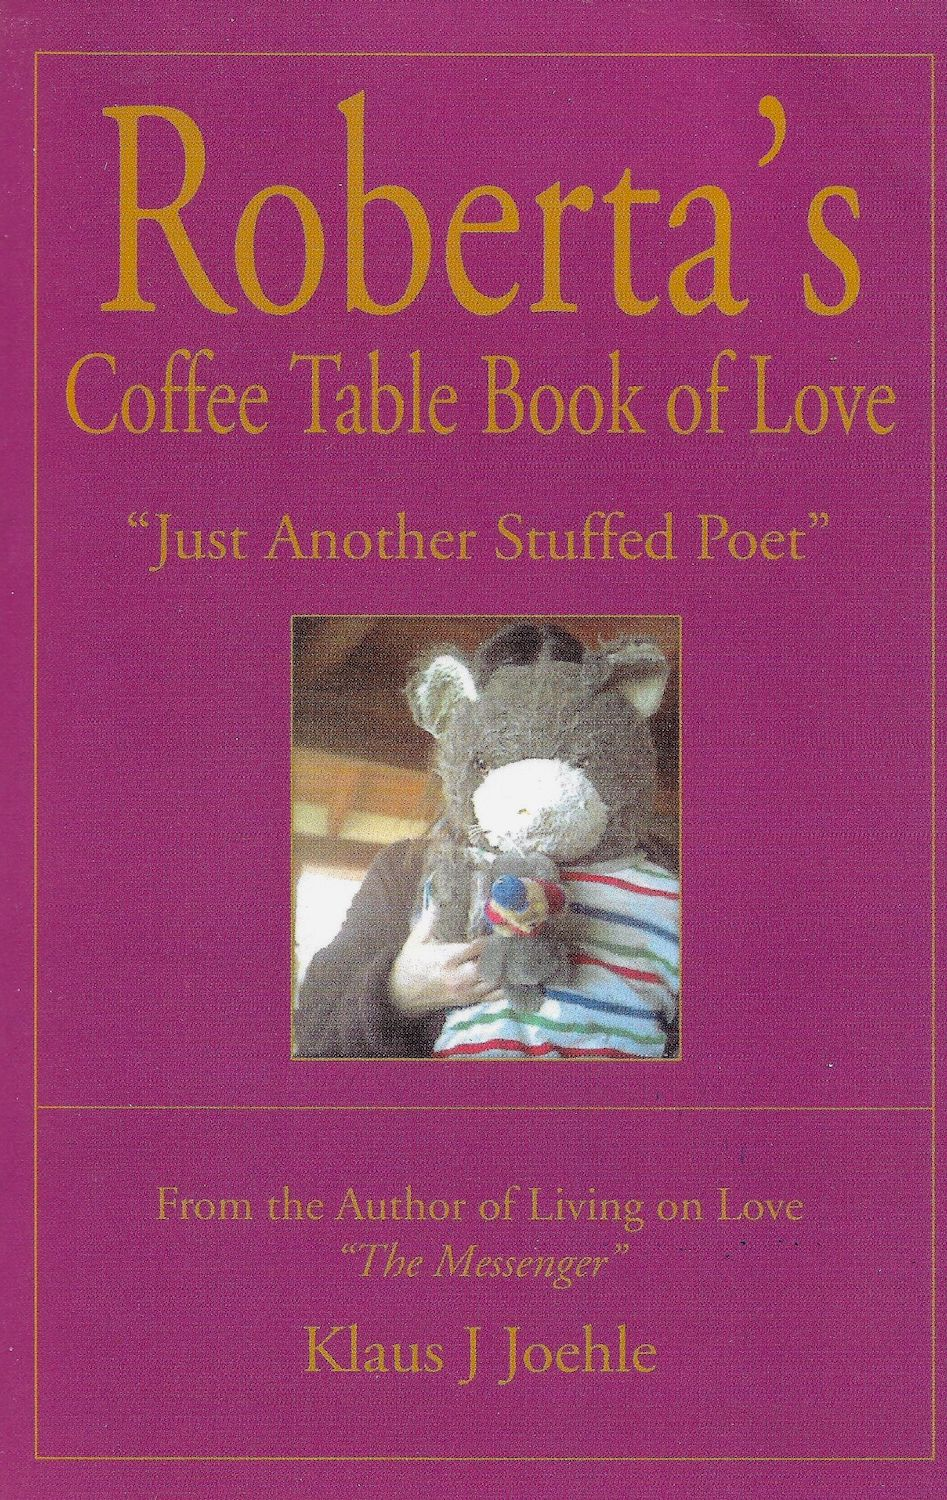 coffee table book of love